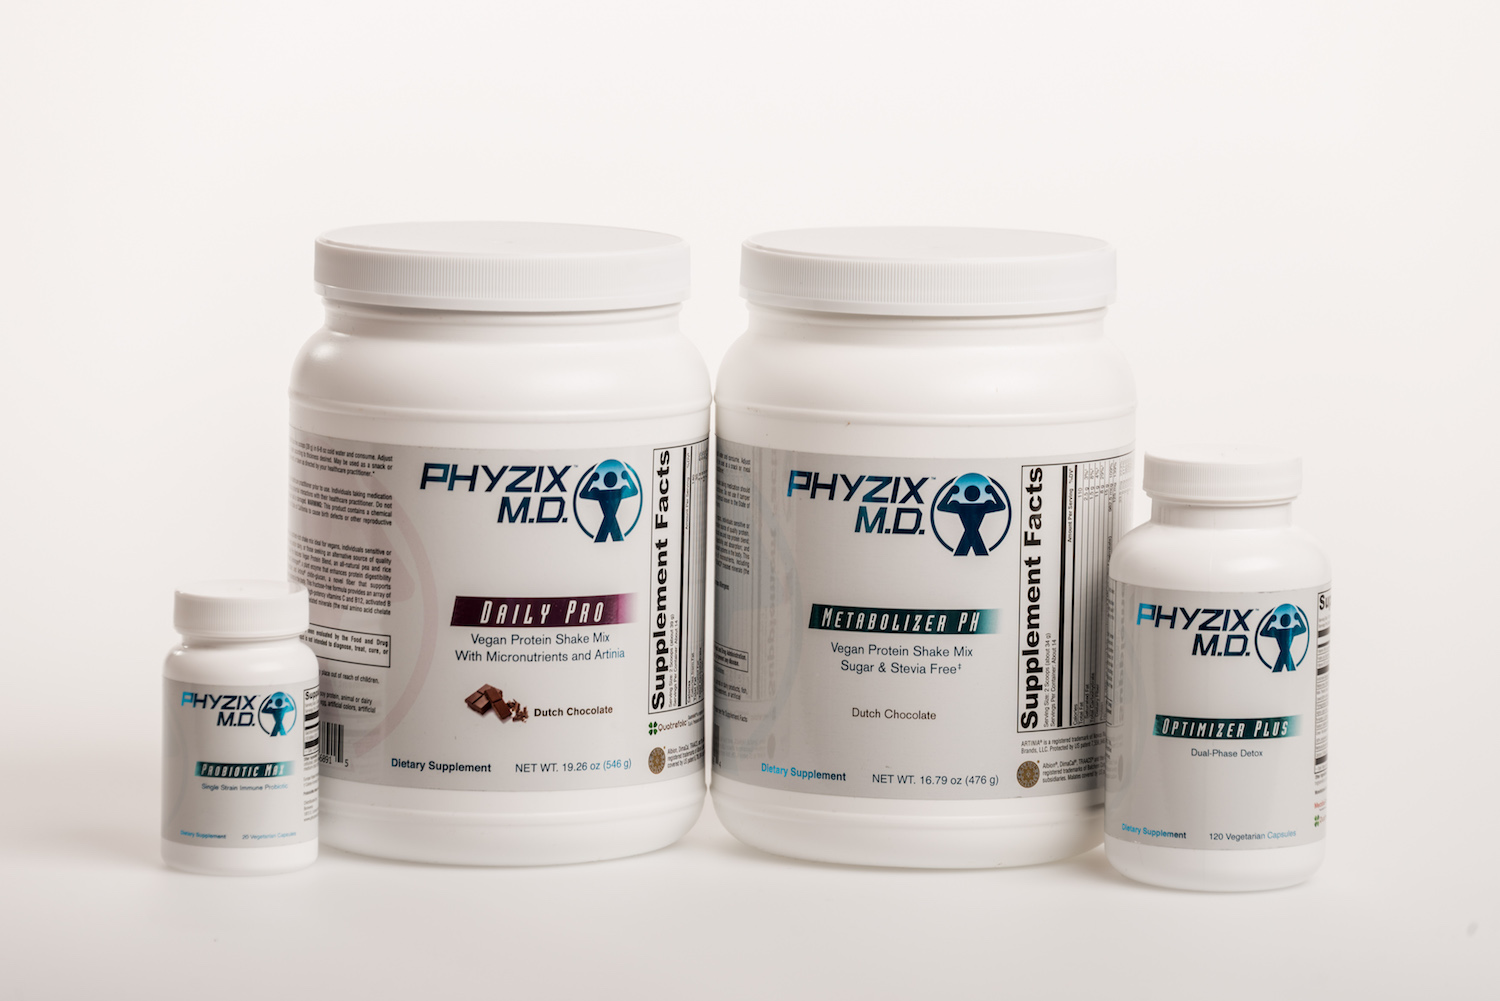 Our Phyzix MD products are a great way to share Bonvera with family and friends.